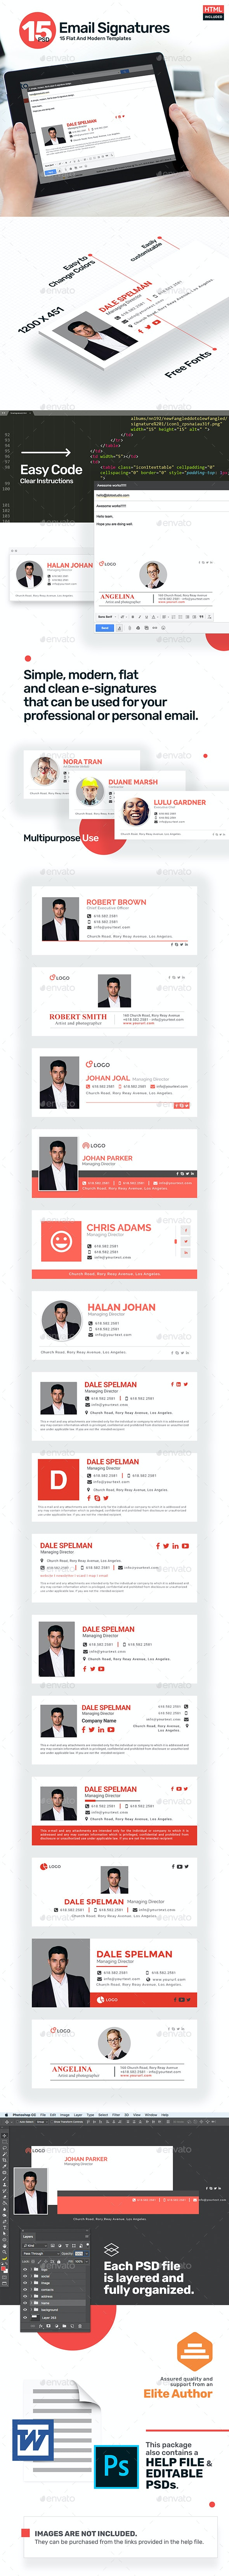 15 Email Signature Templates - HTML Files Included - Updated! - Miscellaneous Web Elements